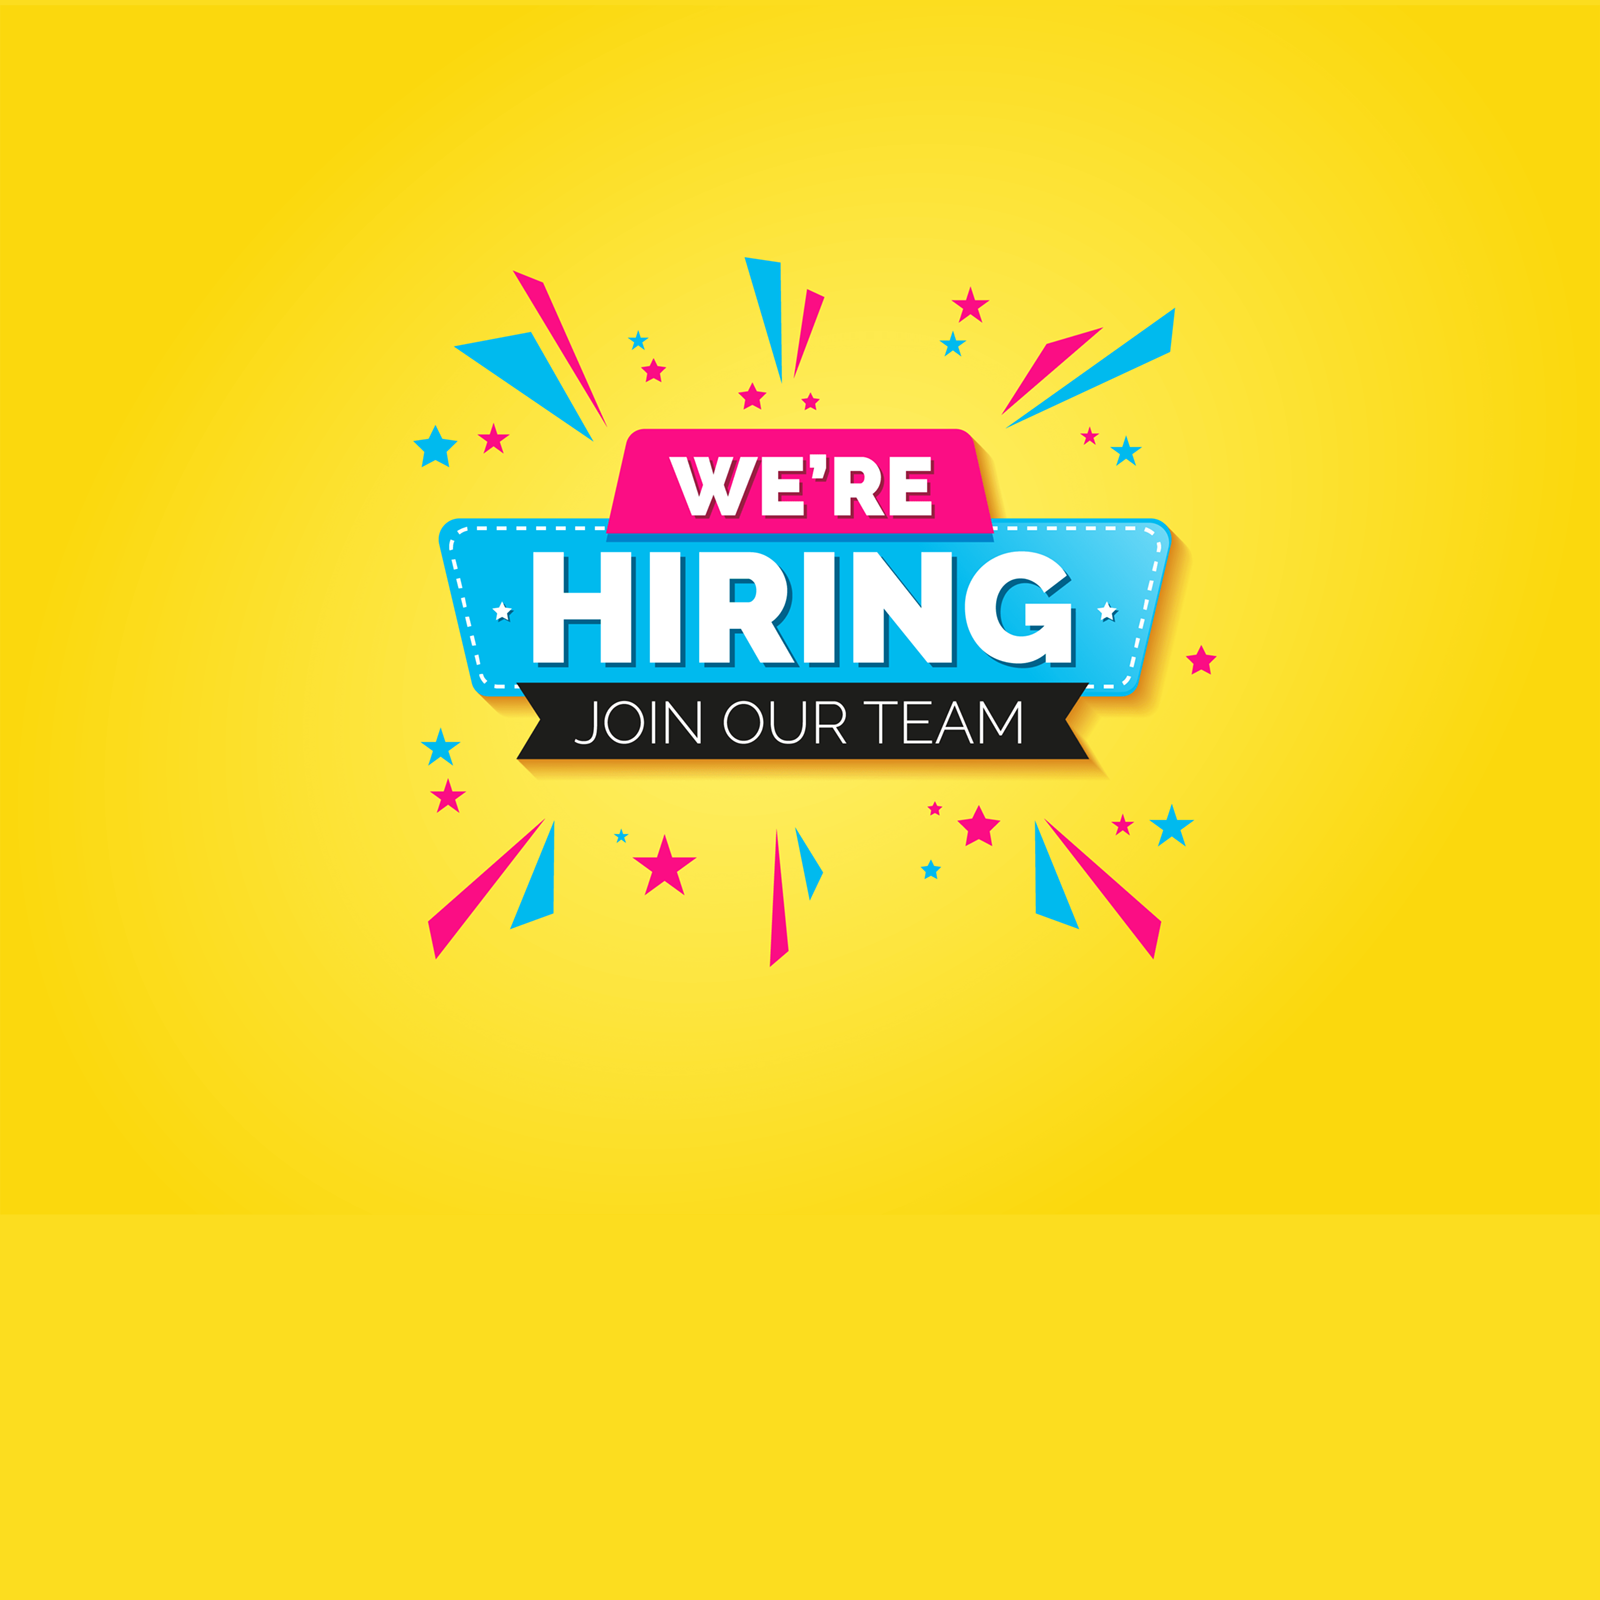 https://globussoft.com/wp-content/uploads/2019/10/hiring-min.png